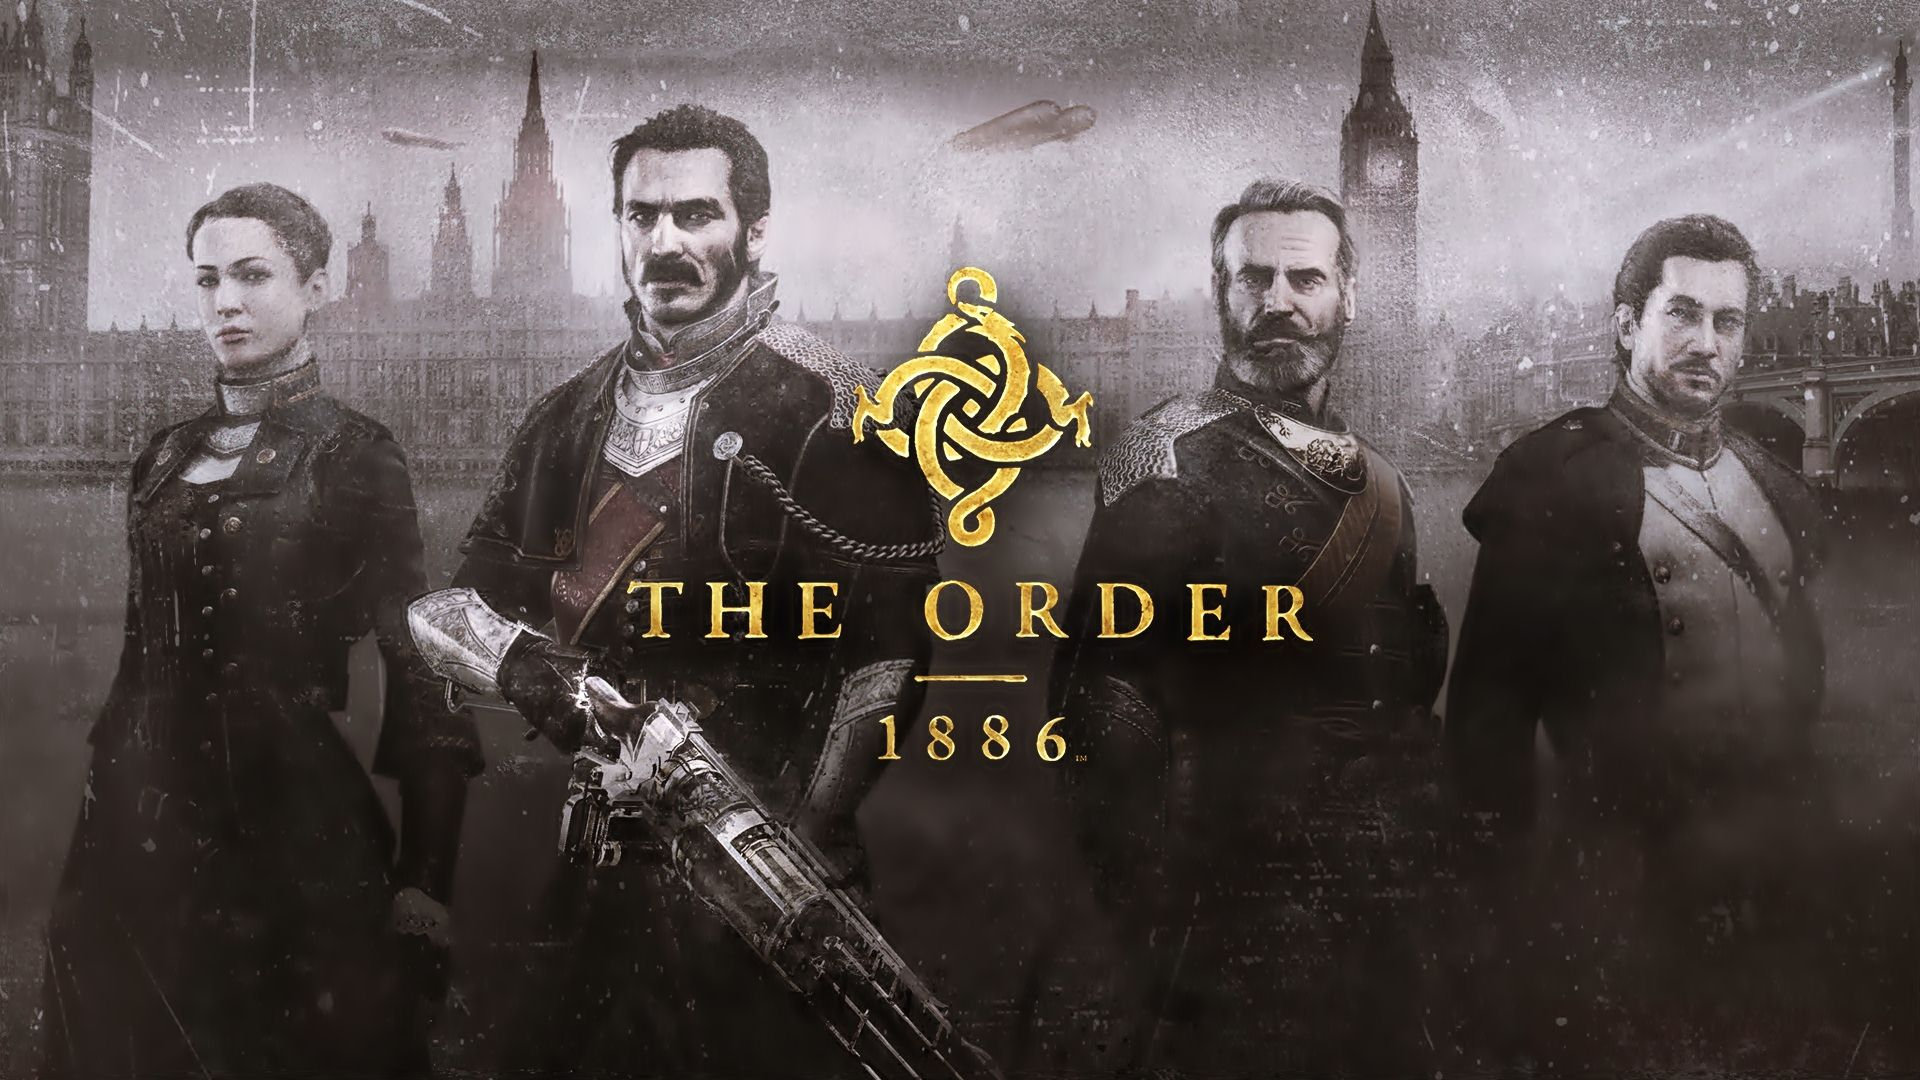 the-order-1886-cast-header